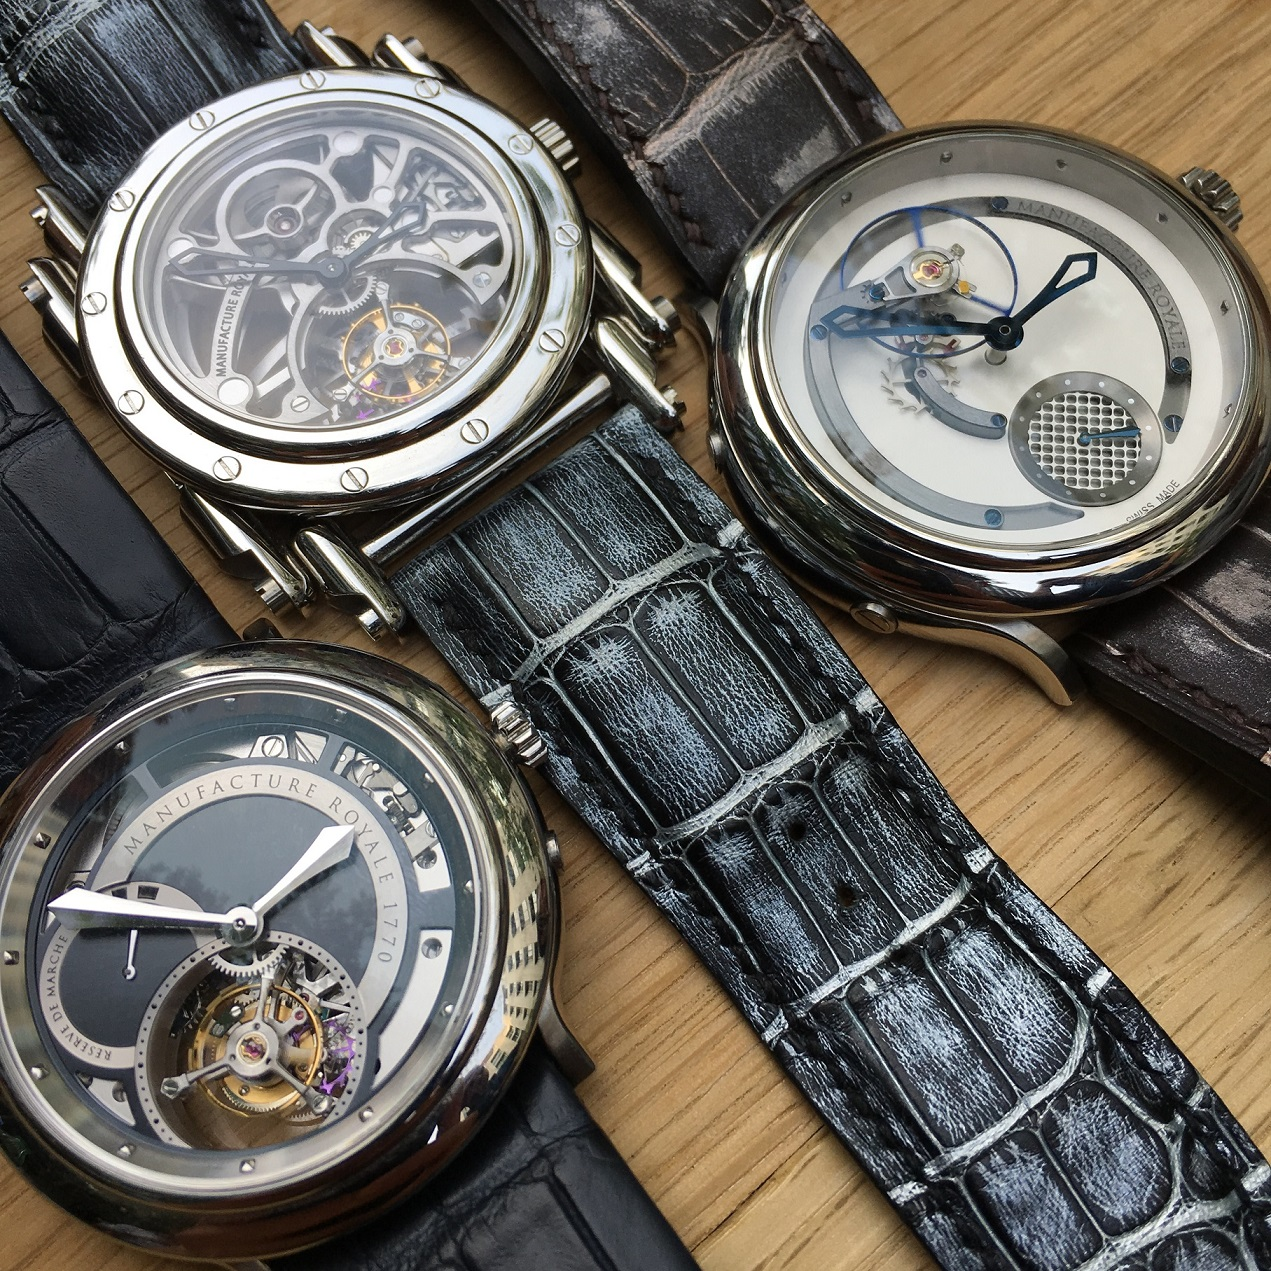 It all started with three: Manufacture Royale timepieces.